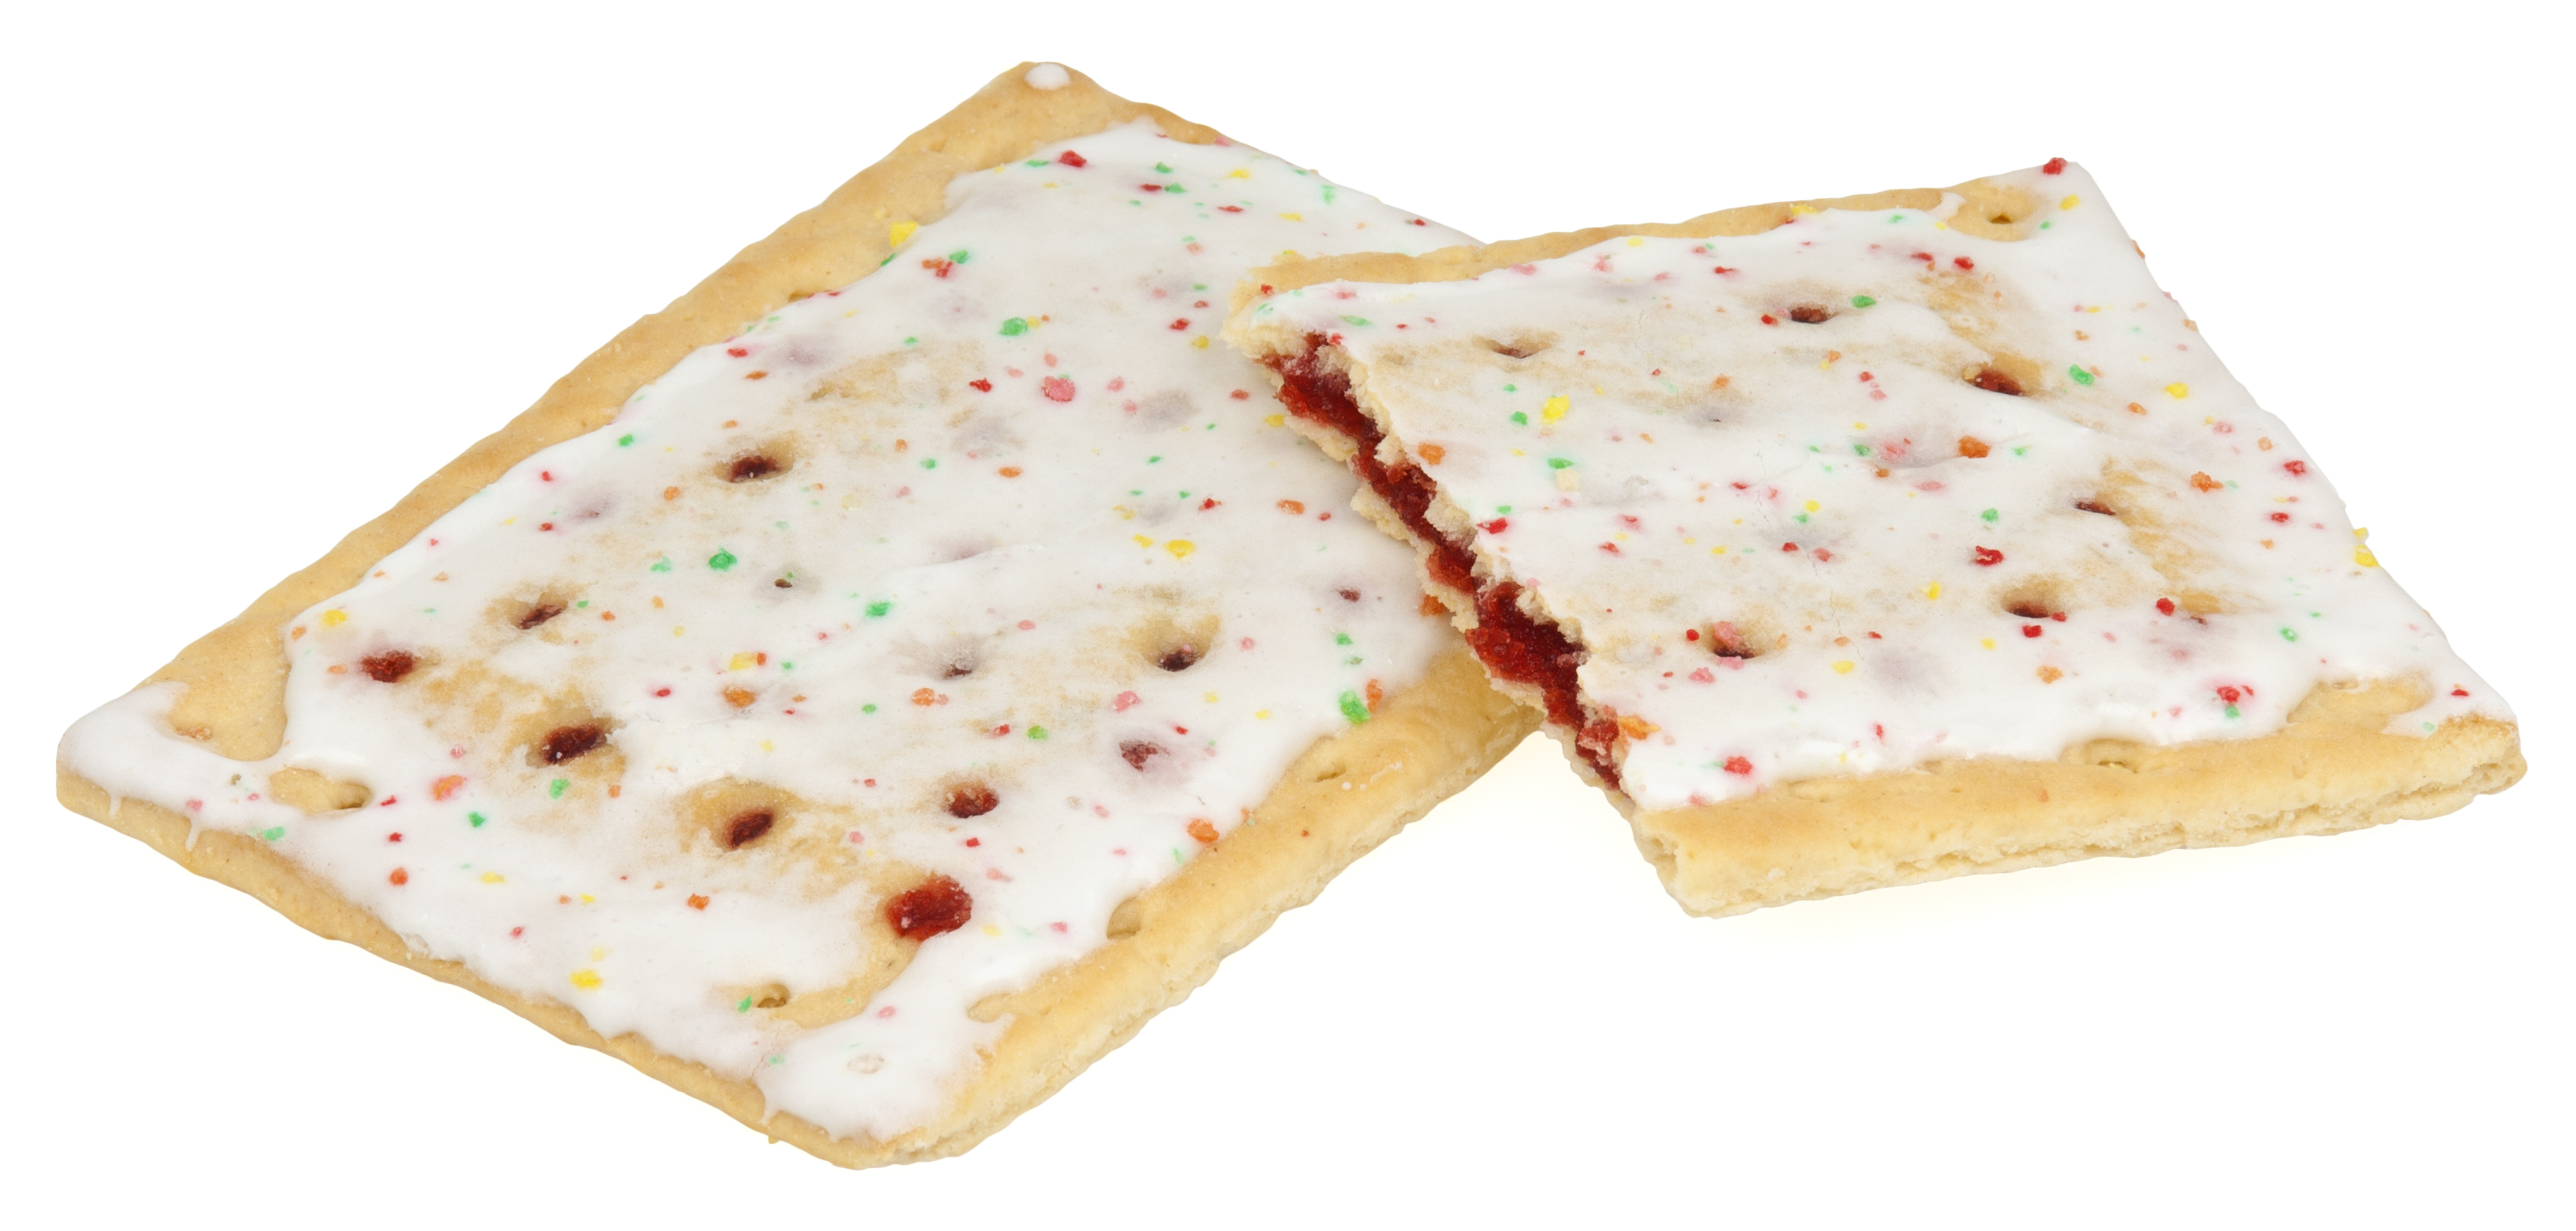 File:Strawberry-Pop-Tarts.jpg - Wikimedia Commons